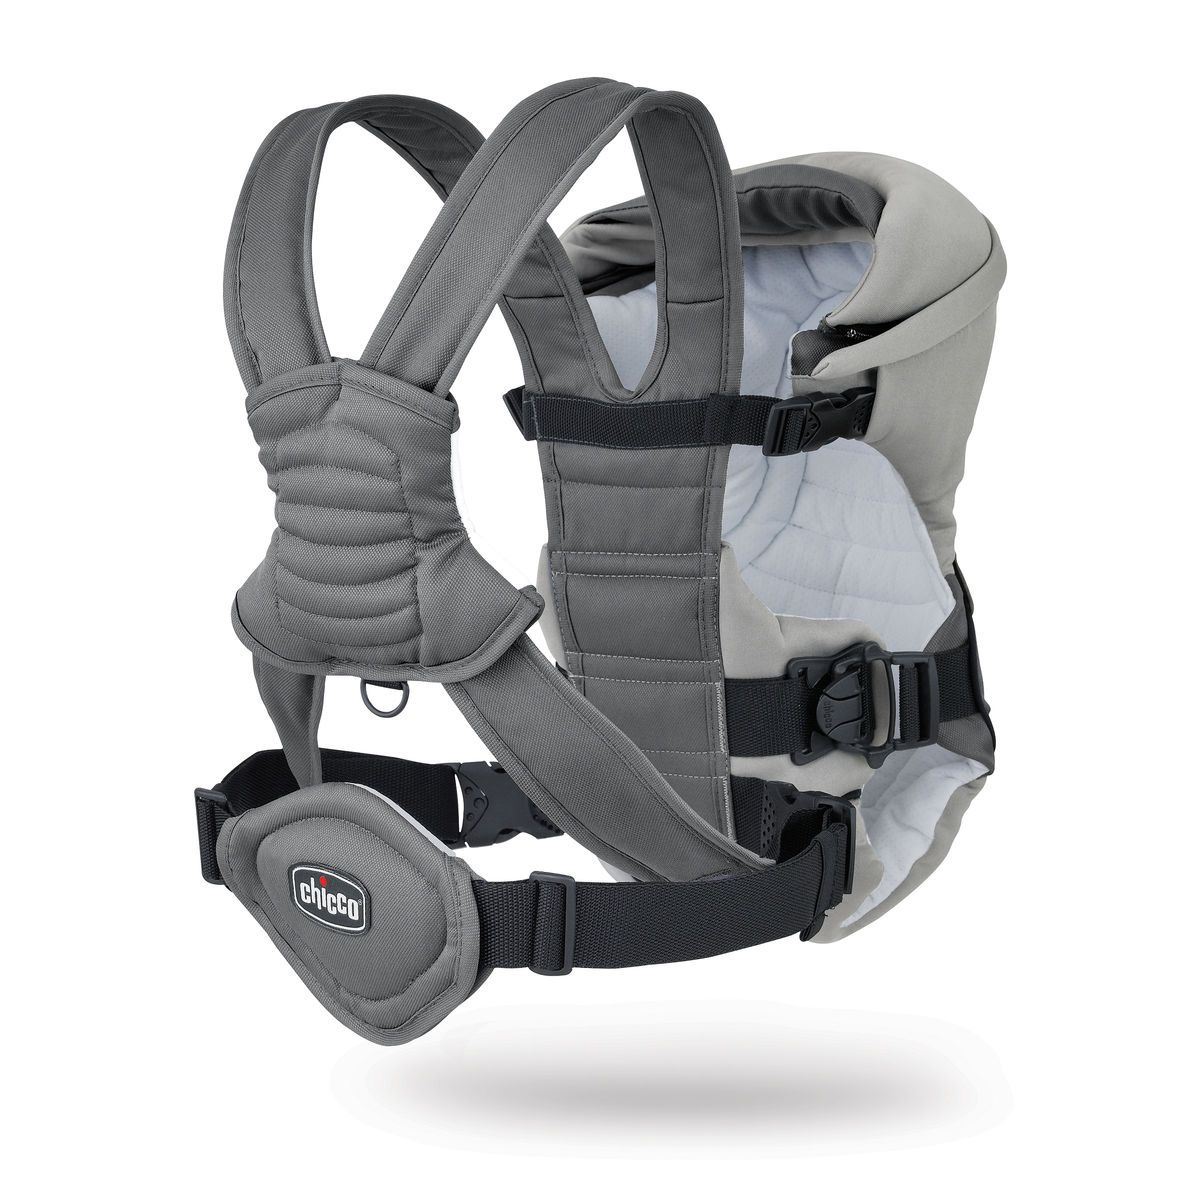 Buy Chicco Soft Dream Baby Carrier In Pakistan At Just Rs2675 Musical Box Rabbit Blue With Gift Exclusively Nowshoppk